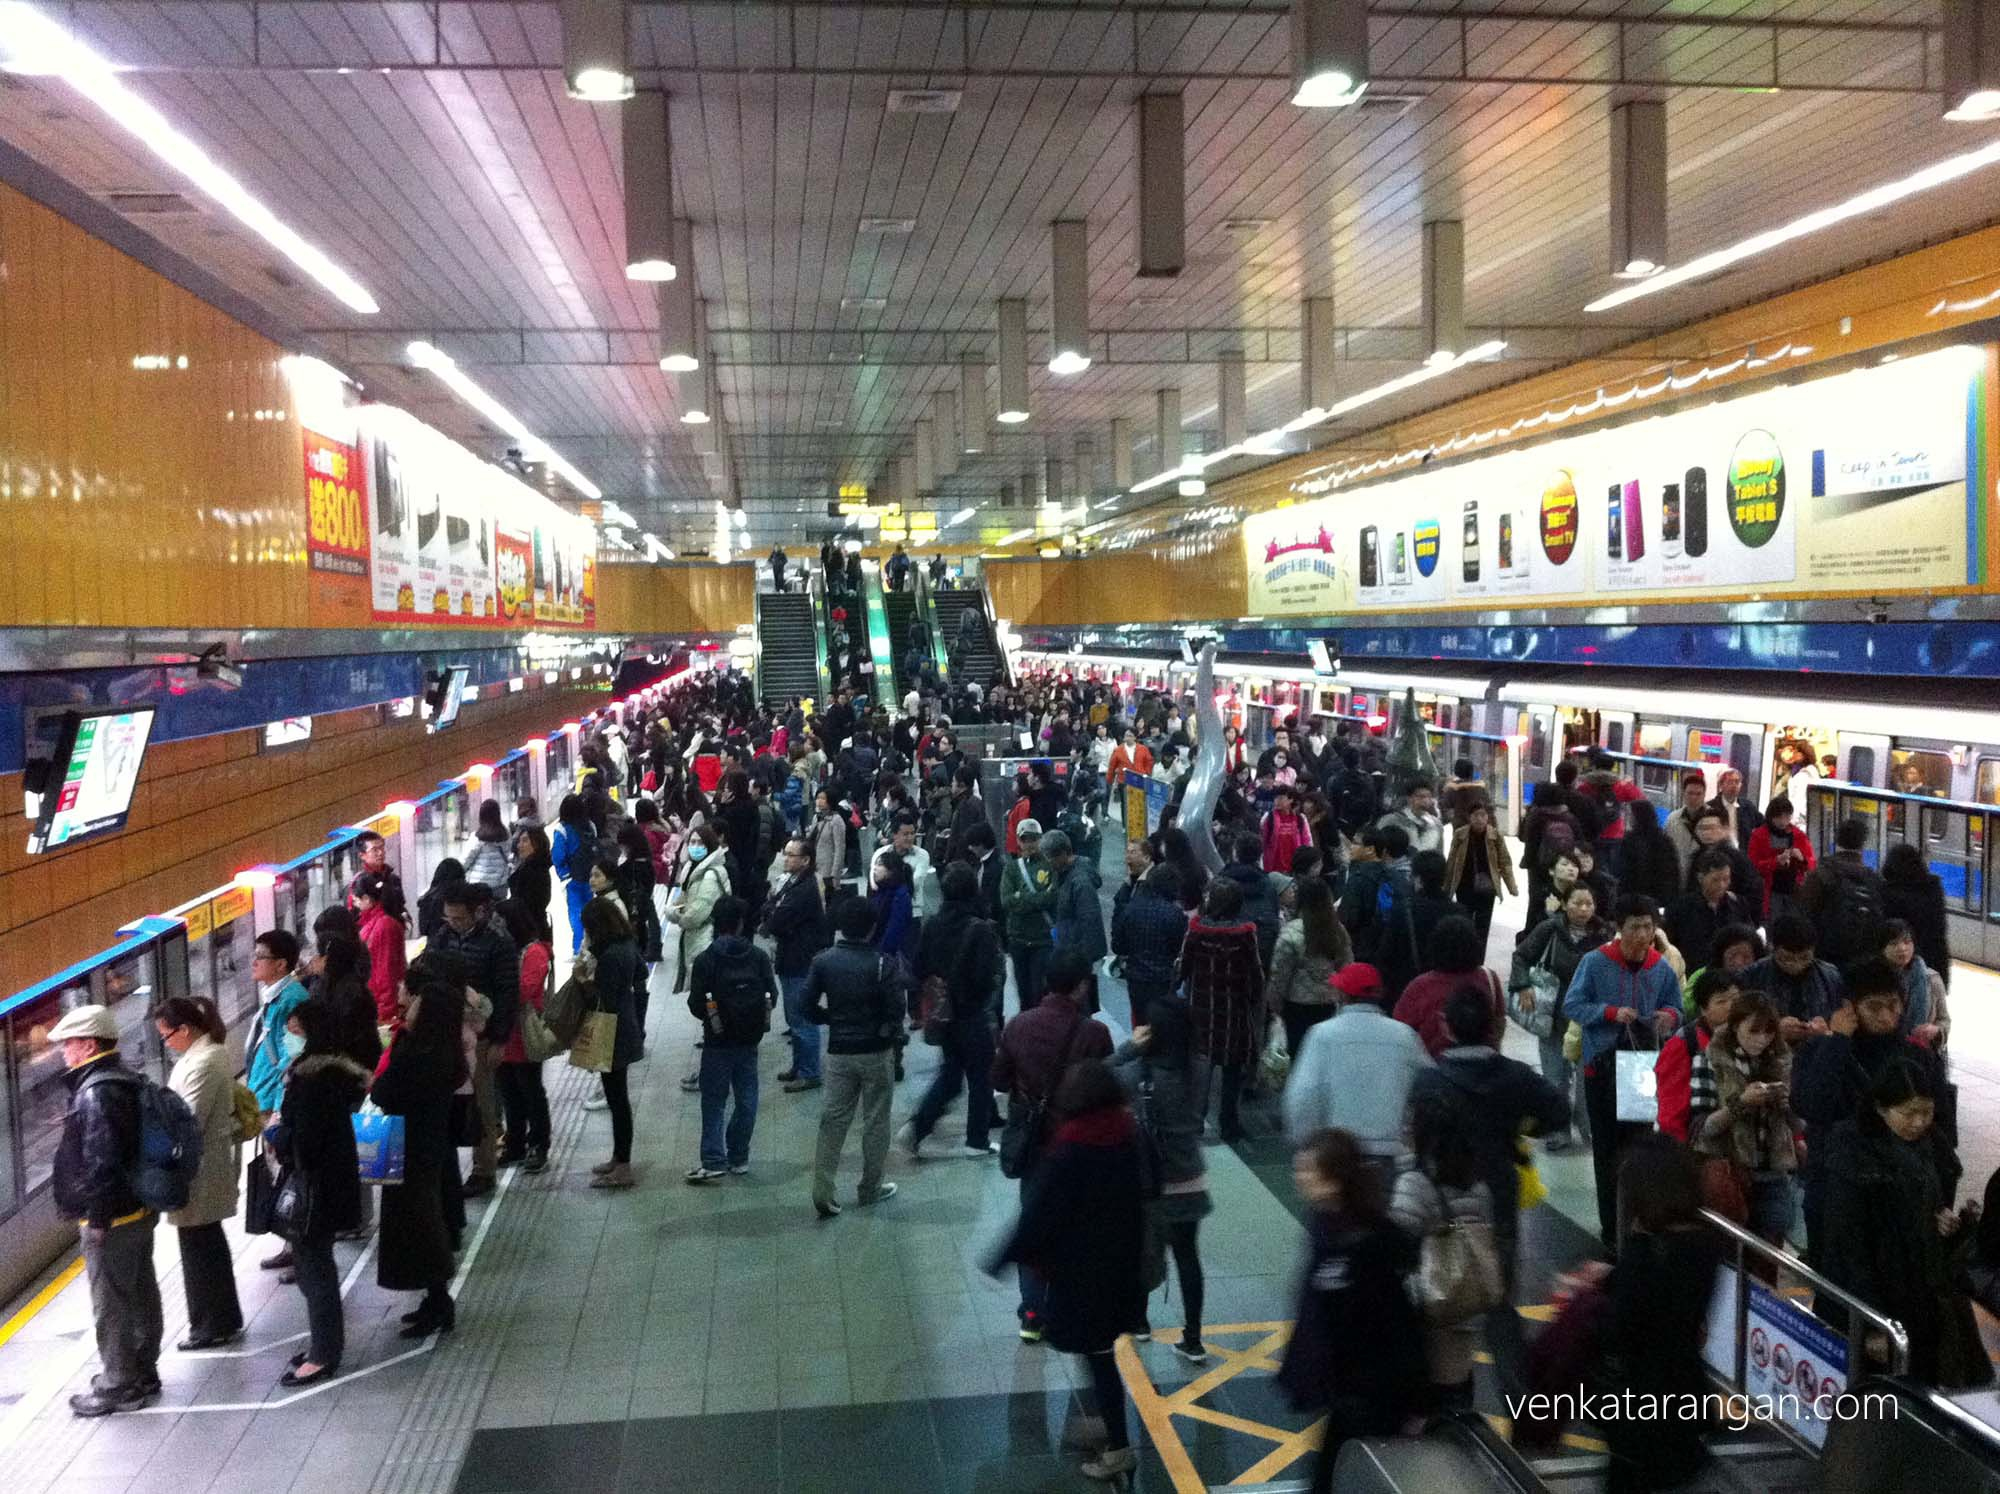 Commuters waiting for Taipei Metro